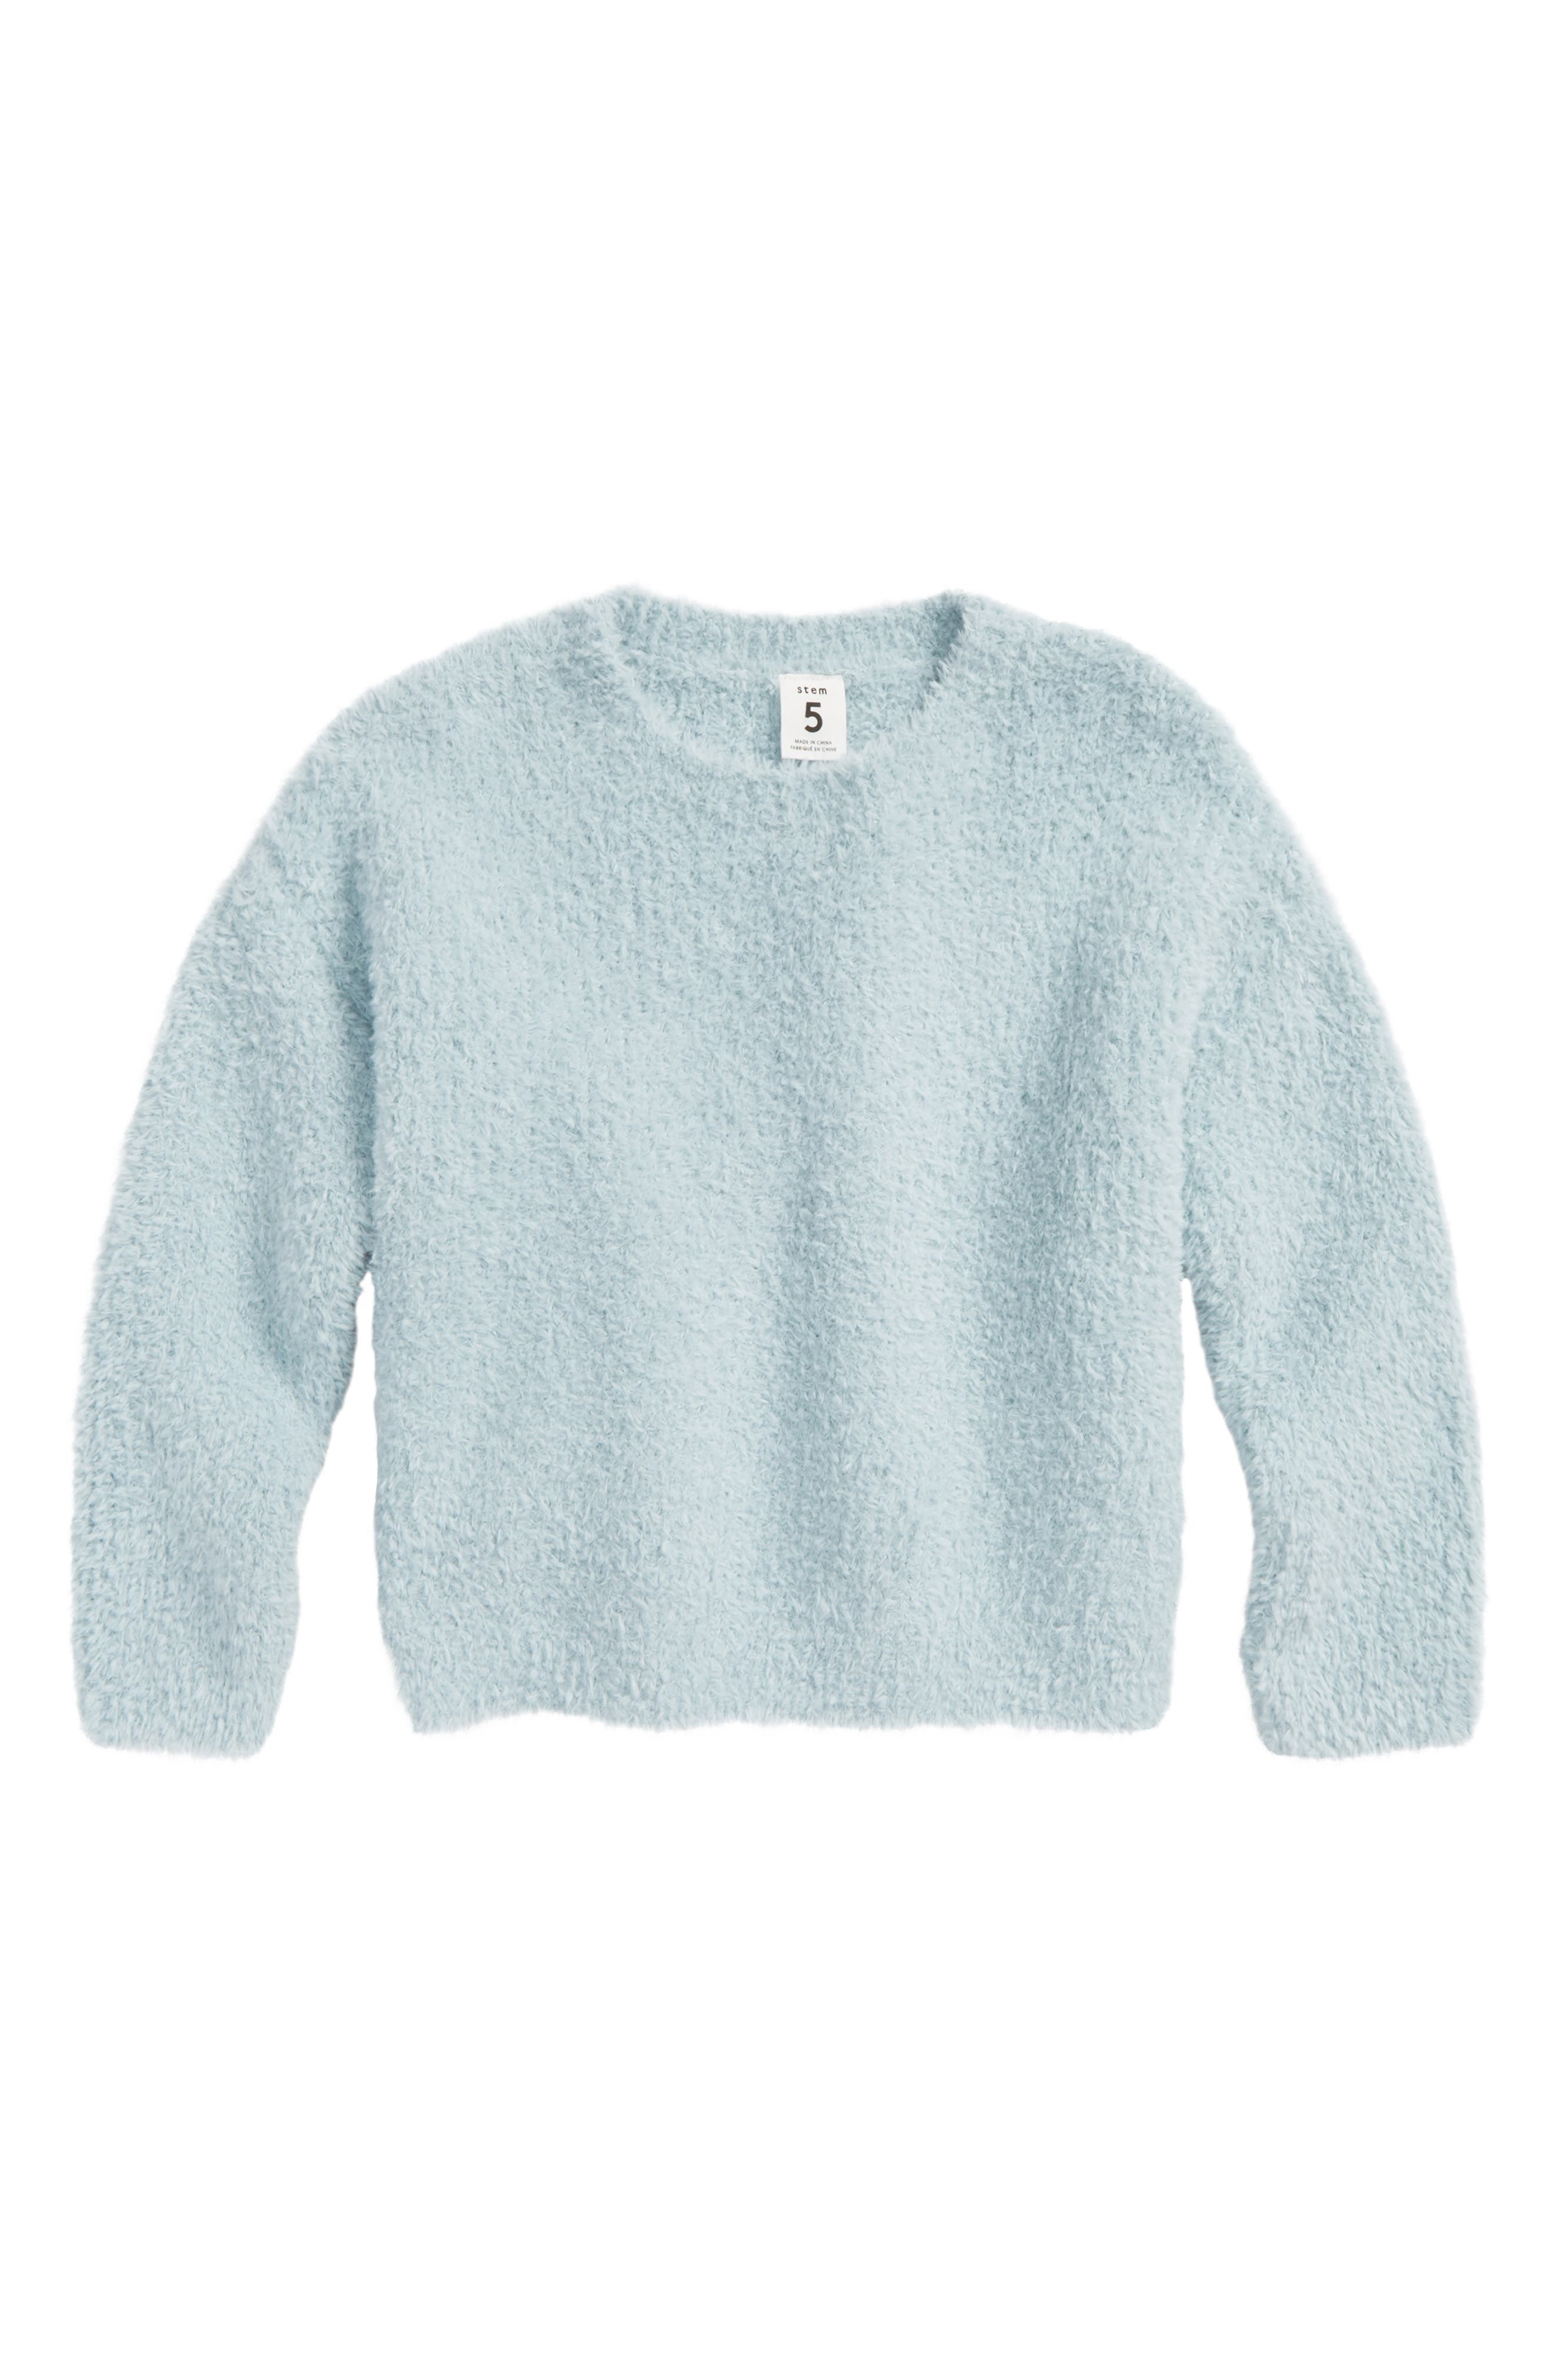 Fluffy Pullover Sweater,                             Main thumbnail 1, color,                             450